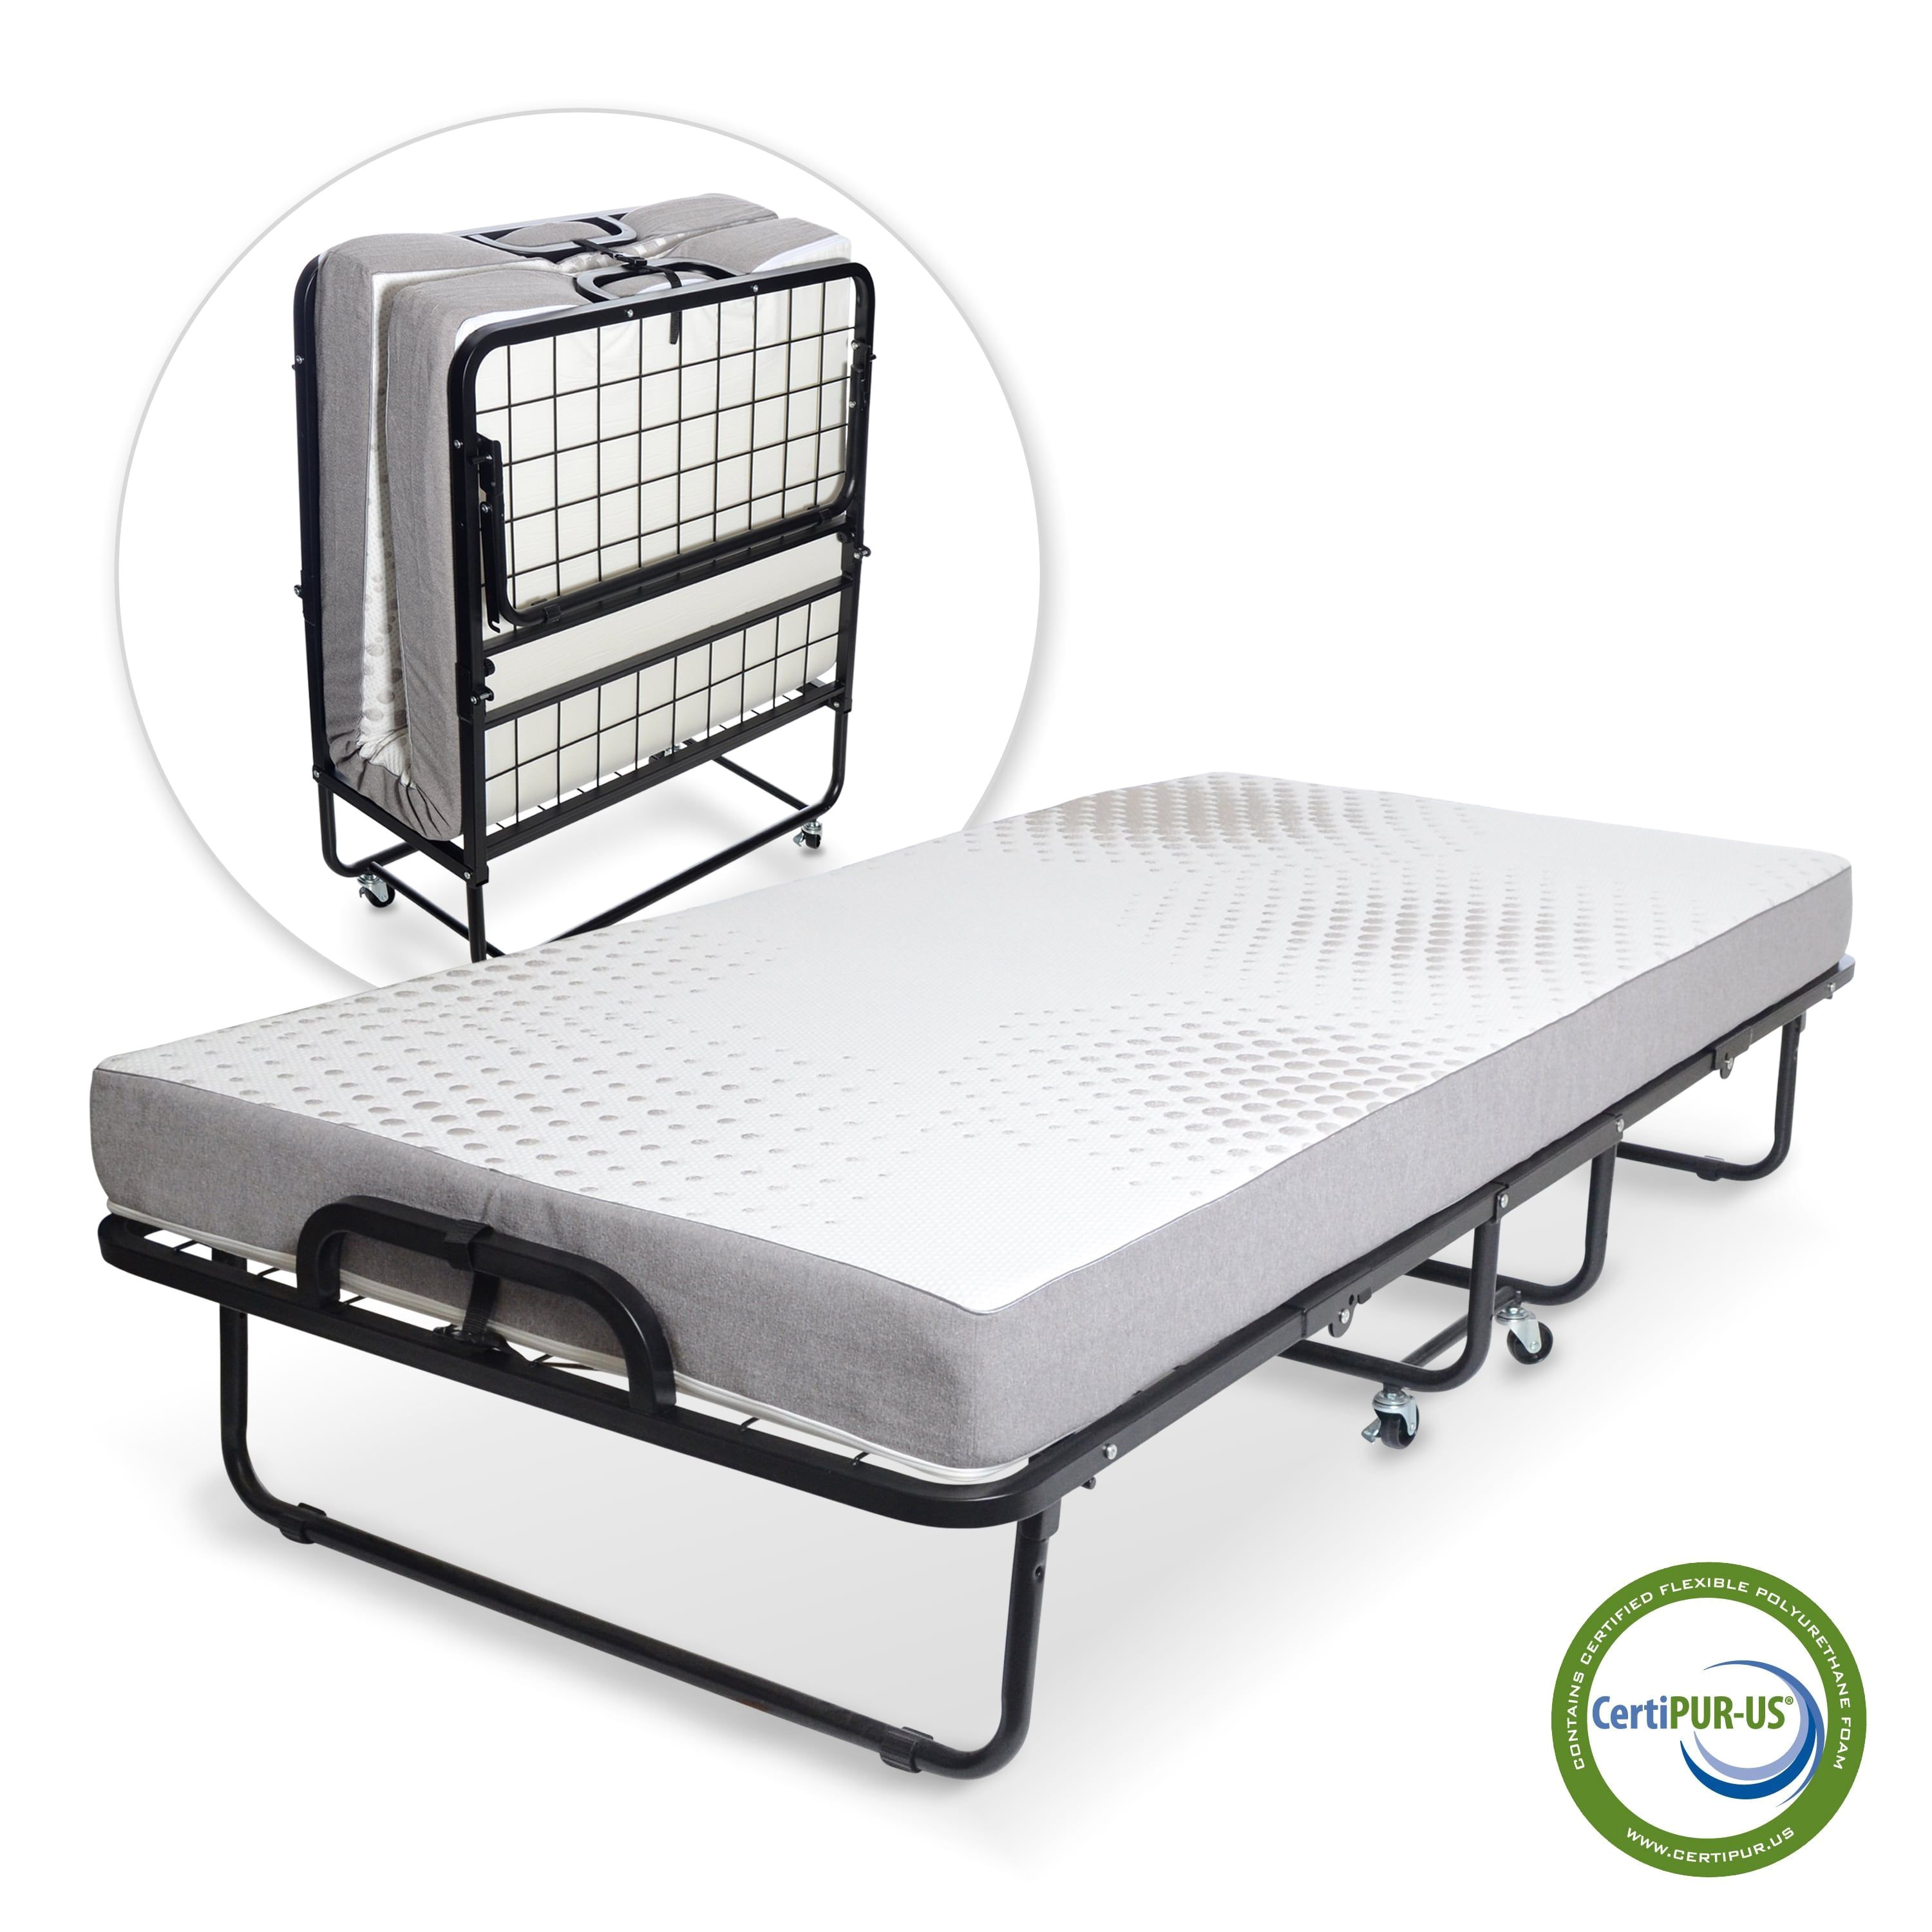 milliard diplomat folding bed twin size with luxurious memory foam mattress and super strong 75 x 38 inch sturdy frame twin memory foam mattress folding